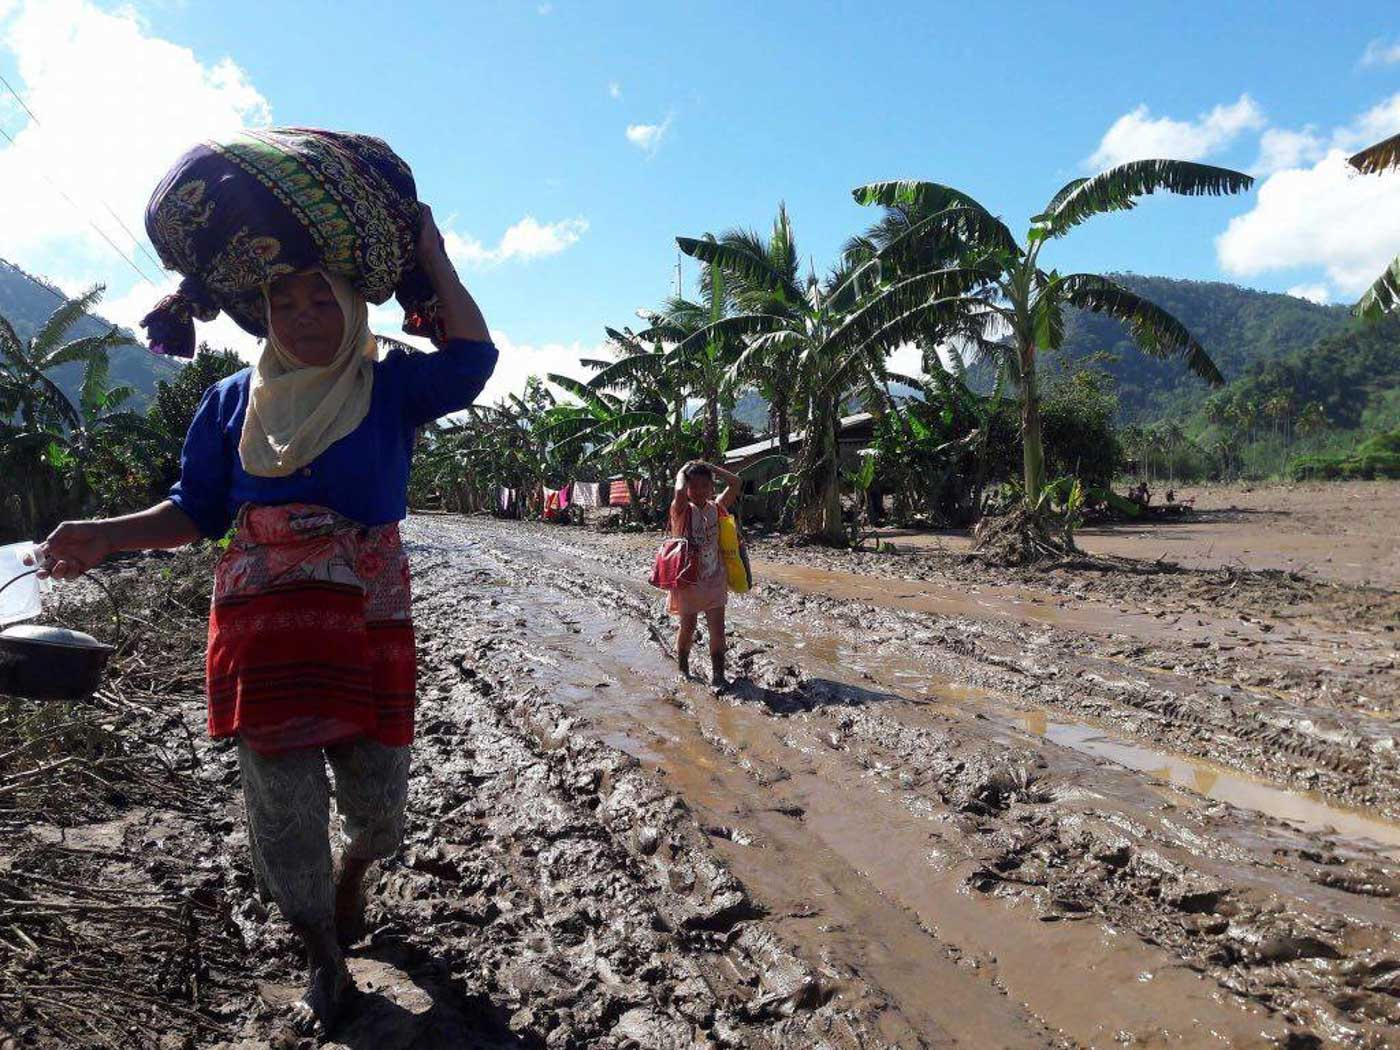 LIVING IN DISPLACEMENT. Thousands who are affected by Severe Tropical Storm Vinta flee their homes, including those who are already living in displacement across Mindanao.Photos by J. Pangalian/UNHCR